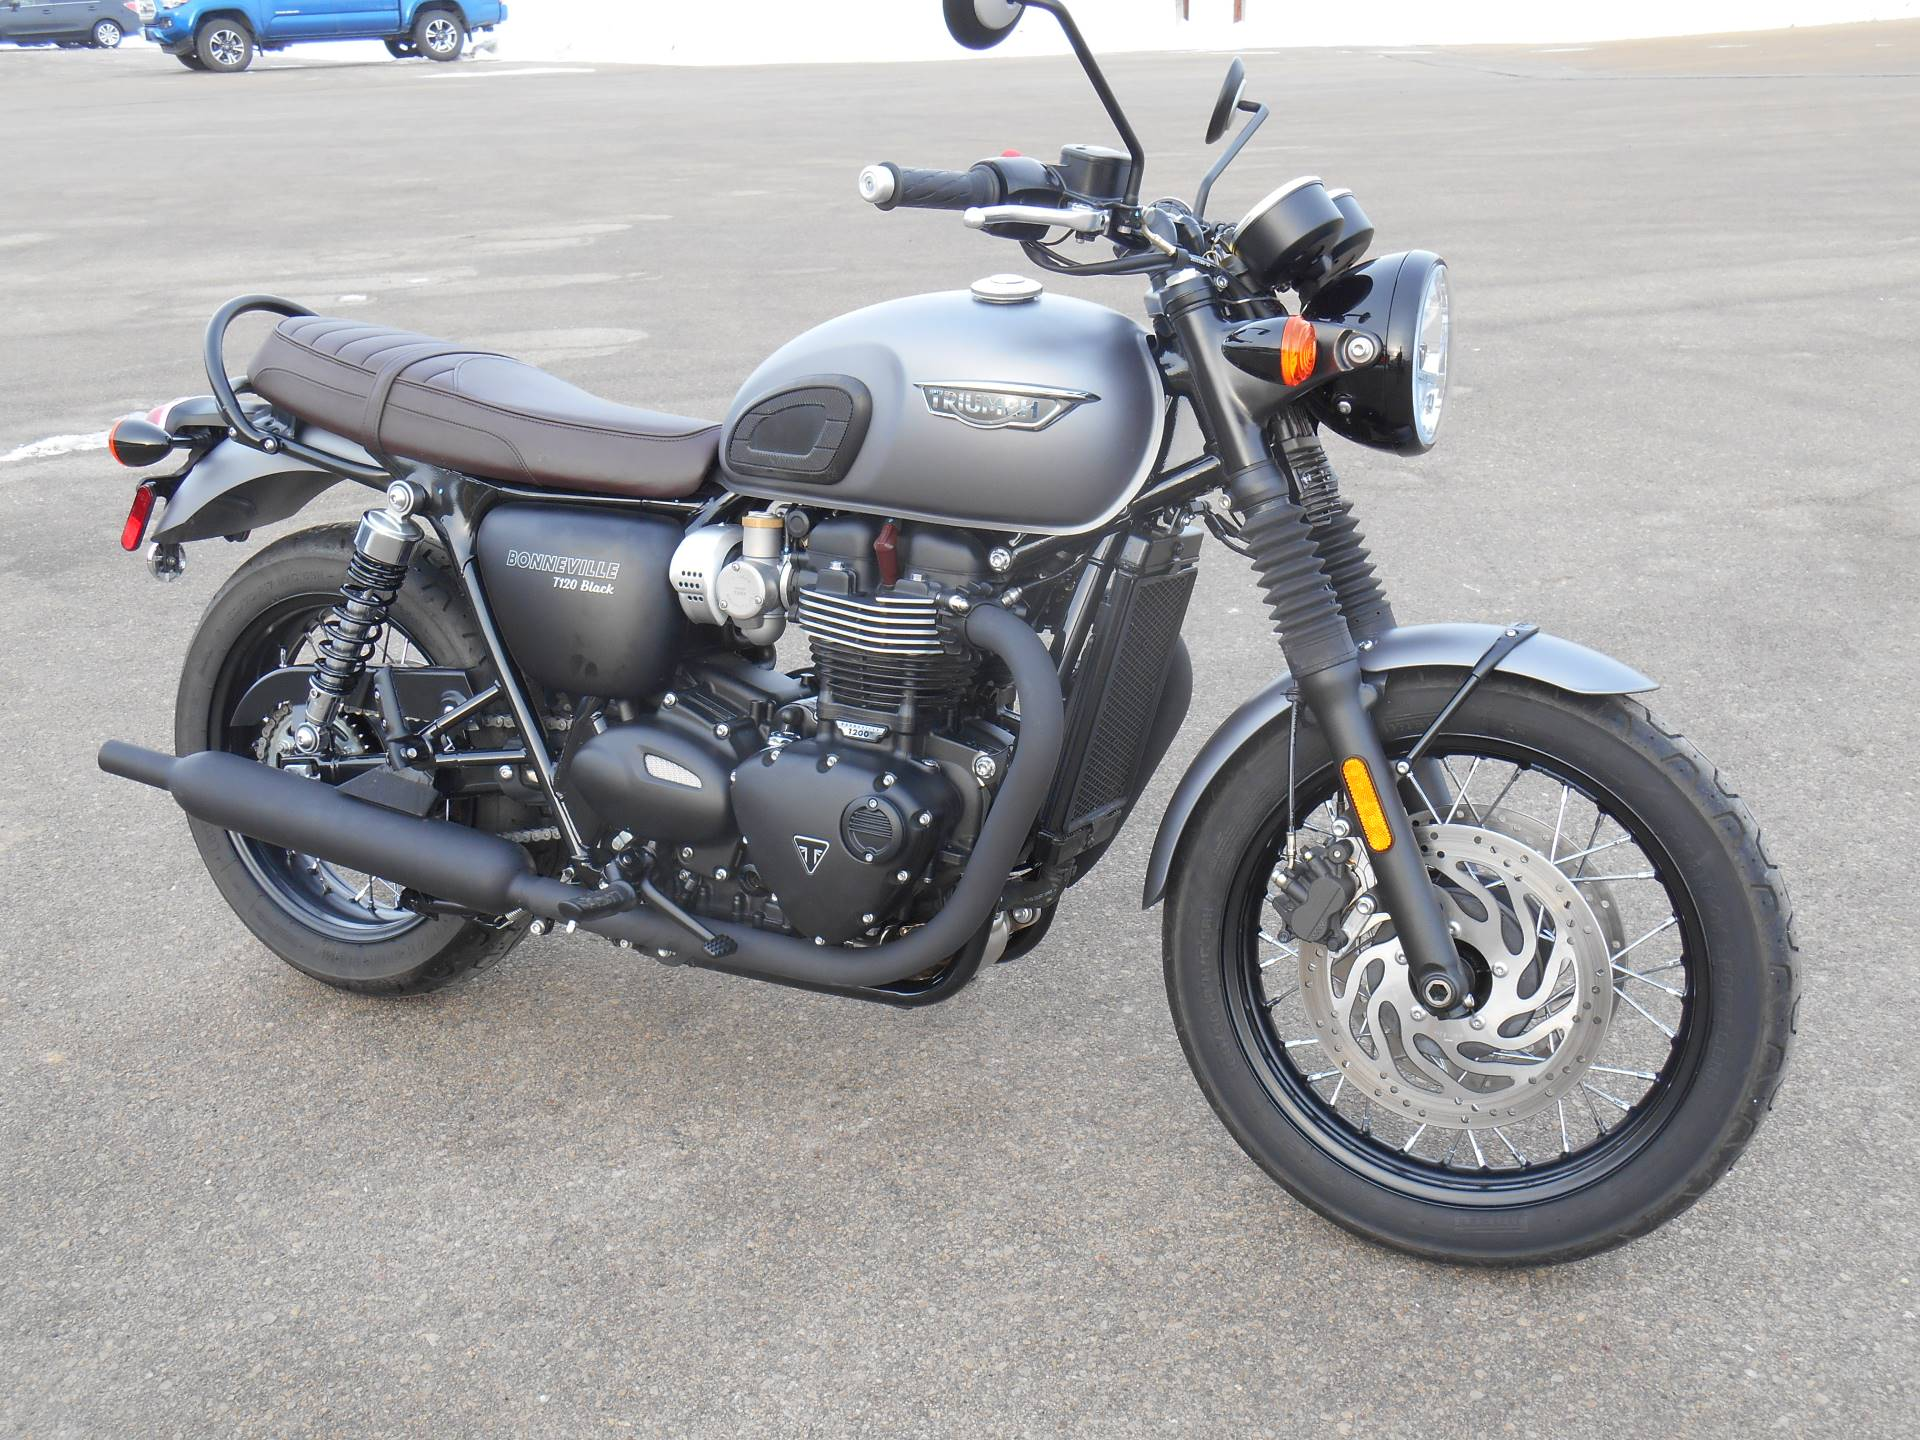 2018 Triumph Bonneville T120 Black in Dubuque, Iowa - Photo 1